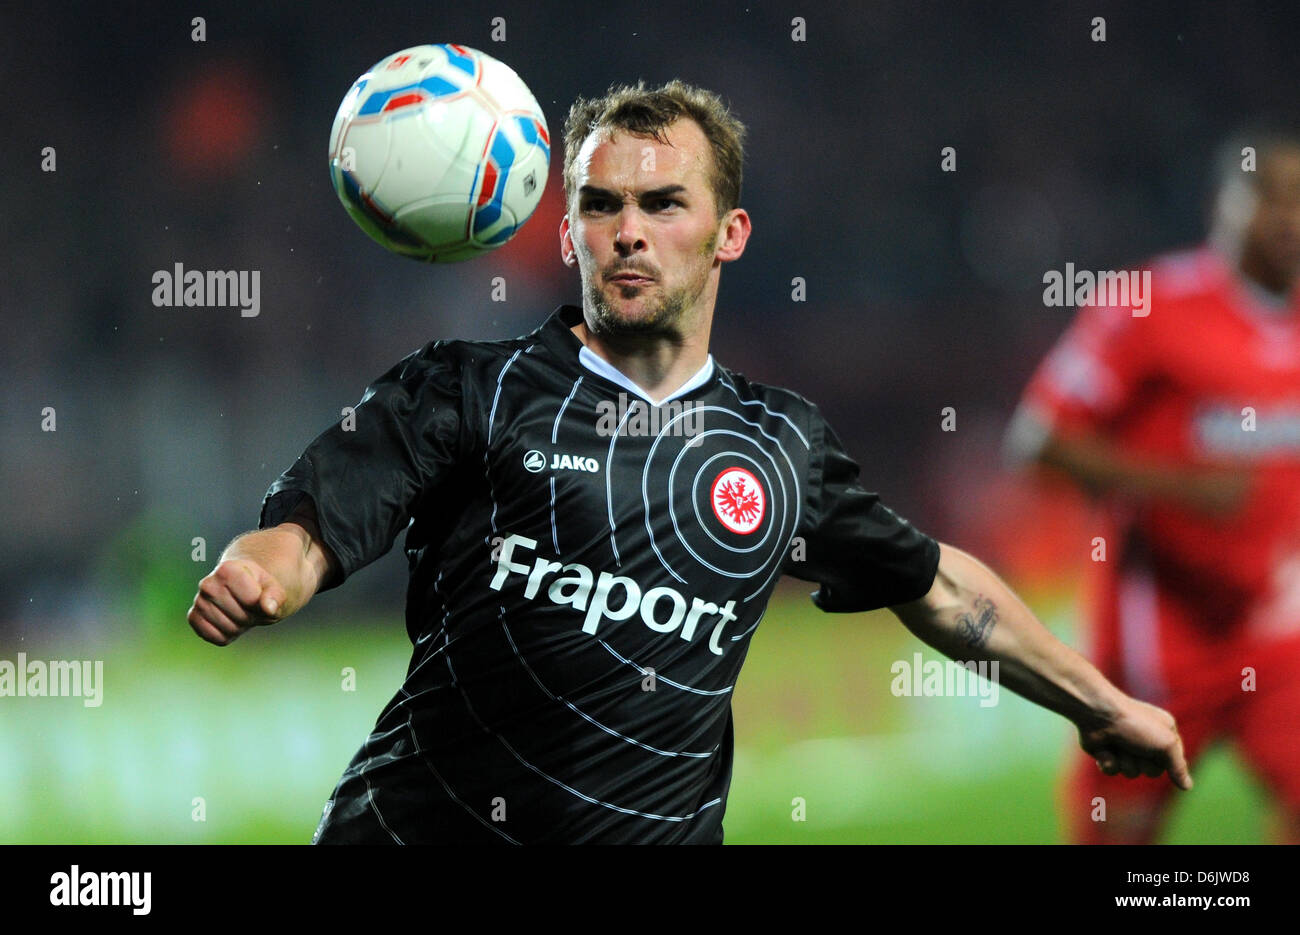 Frankfurt's Erwin Hoffer plays the ball during the German second league match between FCUnion Berlin and - Stock Image